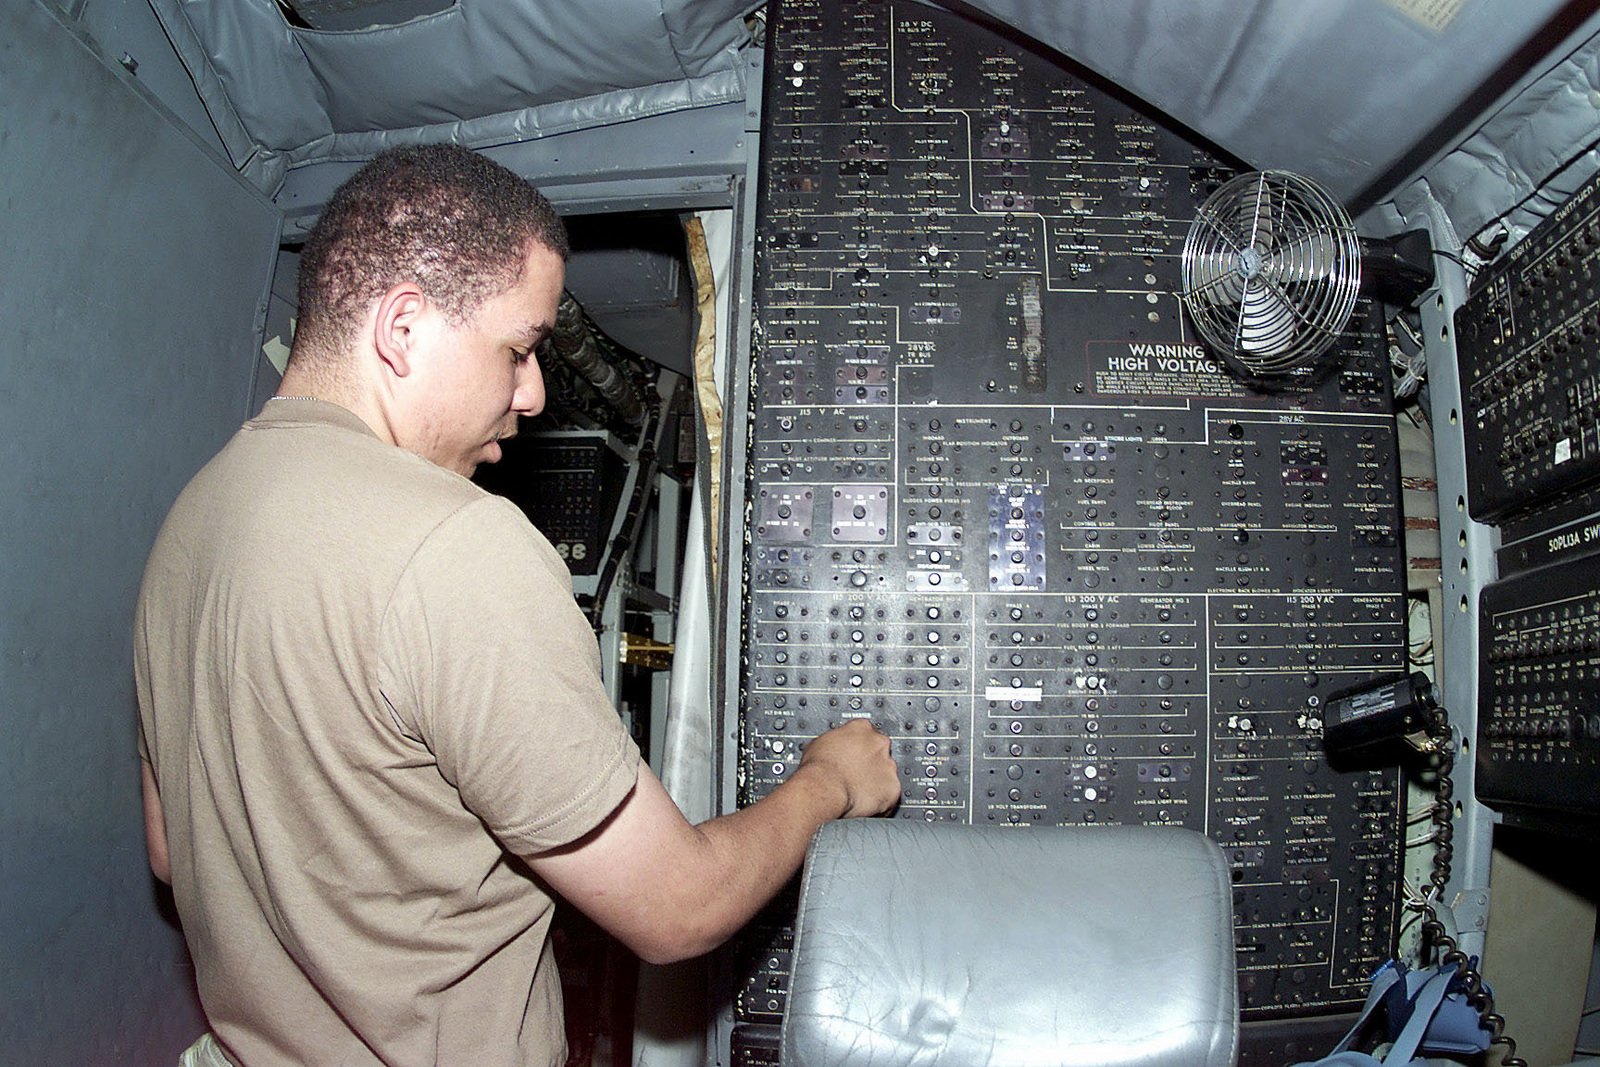 US Air Force SENIOR AIRMAN John Murphy, a Crew CHIEF from the 363rd Expeditionary Reconnaissance Squadron, Prince Sultan Air Base, Saudi Arabia, performs post-flight procedures in the cockpit of a USAF RC-135 Rivet Joint Reconnaissance aircraft at the base, on October 26th, 2000. SRA Murphy is part of the coalition force here to support Operation SOUTHERN WATCH, a military effort to enforce the no-fly and no-drive zone in Southern Iraq